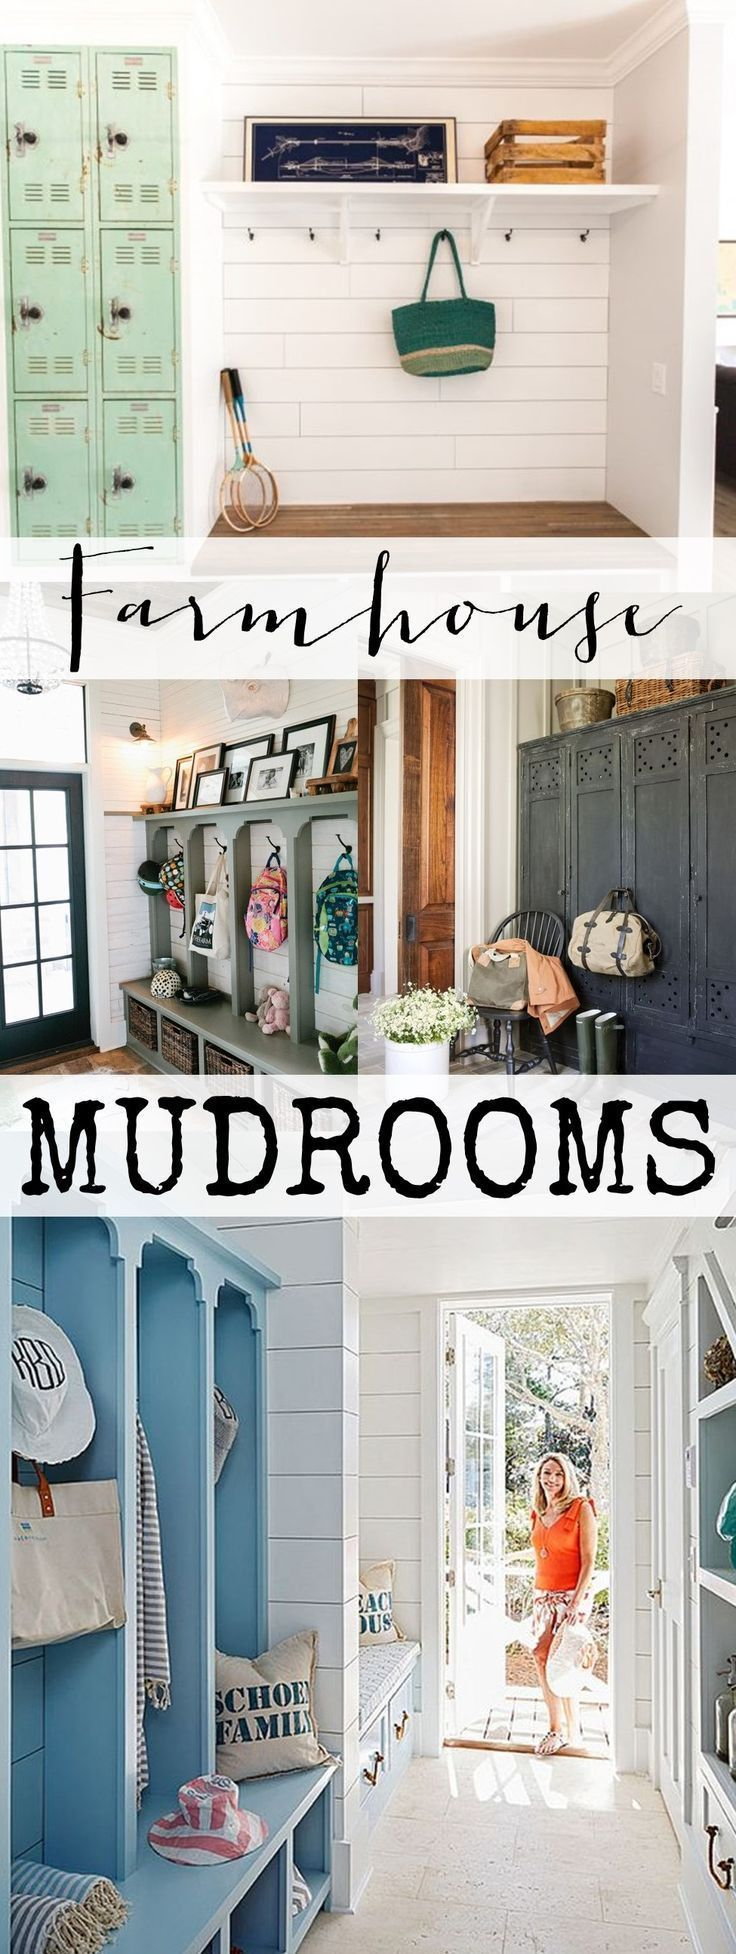 Lovely 211 Best Mudrooms Images On Pinterest | Entrance Hall, Foyers And Laundry  Room